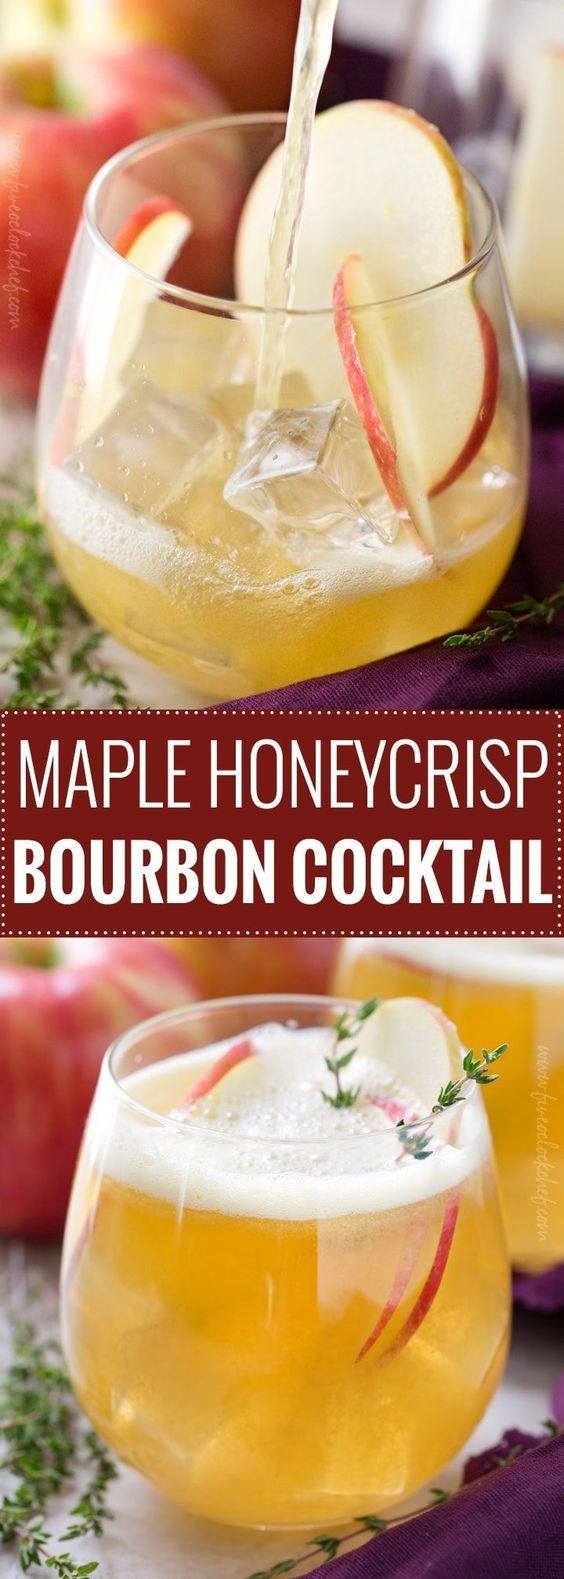 Maple Honeycrisp Bourbon Cocktails | These bourbon cocktails are incredibly refreshing and a great mix of sweet with a bit of tart. Take advantage of those Fall apples! | The 5 o'clock Chef | Maple Honeycrisp Bourbon Cocktails | These bourbon cocktails are incredibly refreshing and a great mix of sweet with a bit of tart. Take advantage of those Fall apples! | The 5 o'clock Chef |